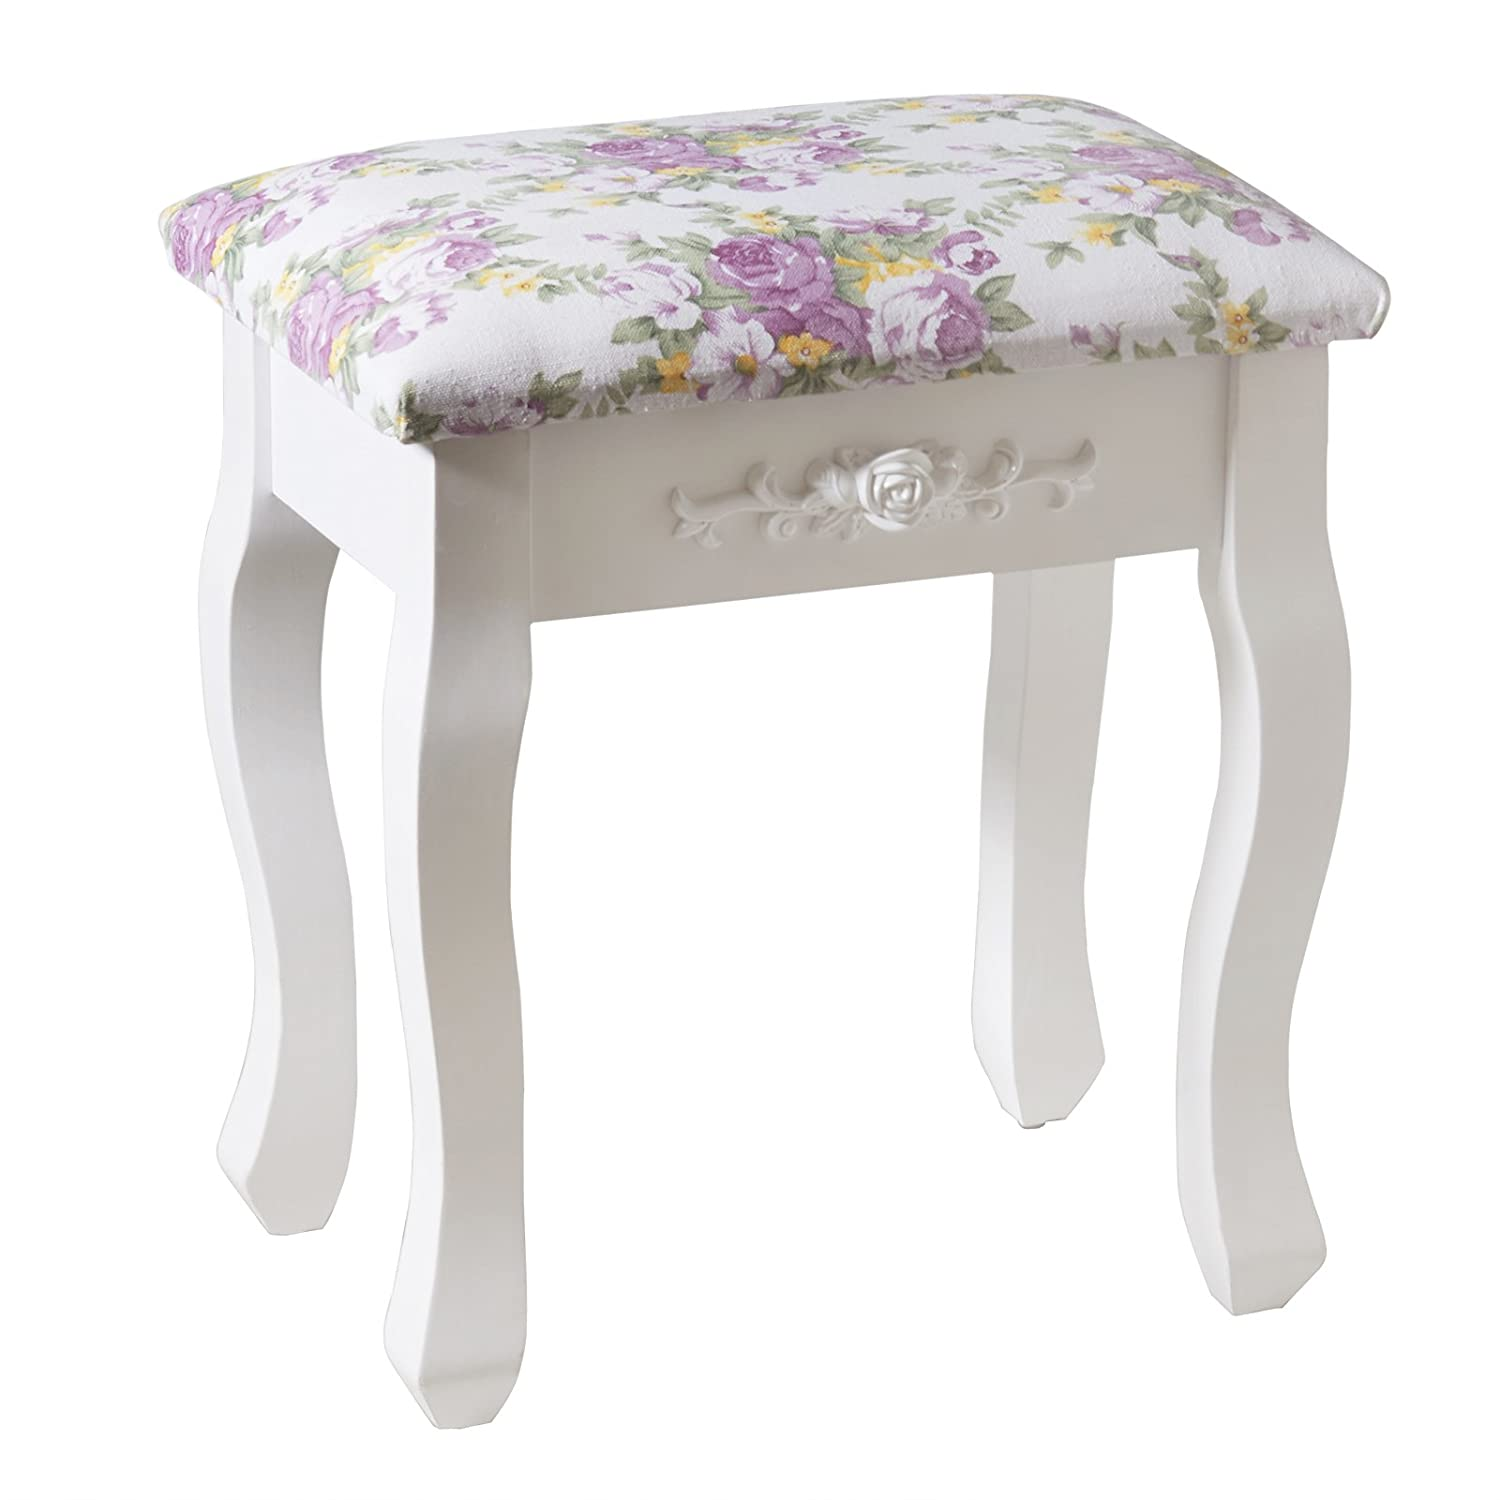 UEnjoy White Dressing Table Stool Piano Chair Vintage Floral Decor